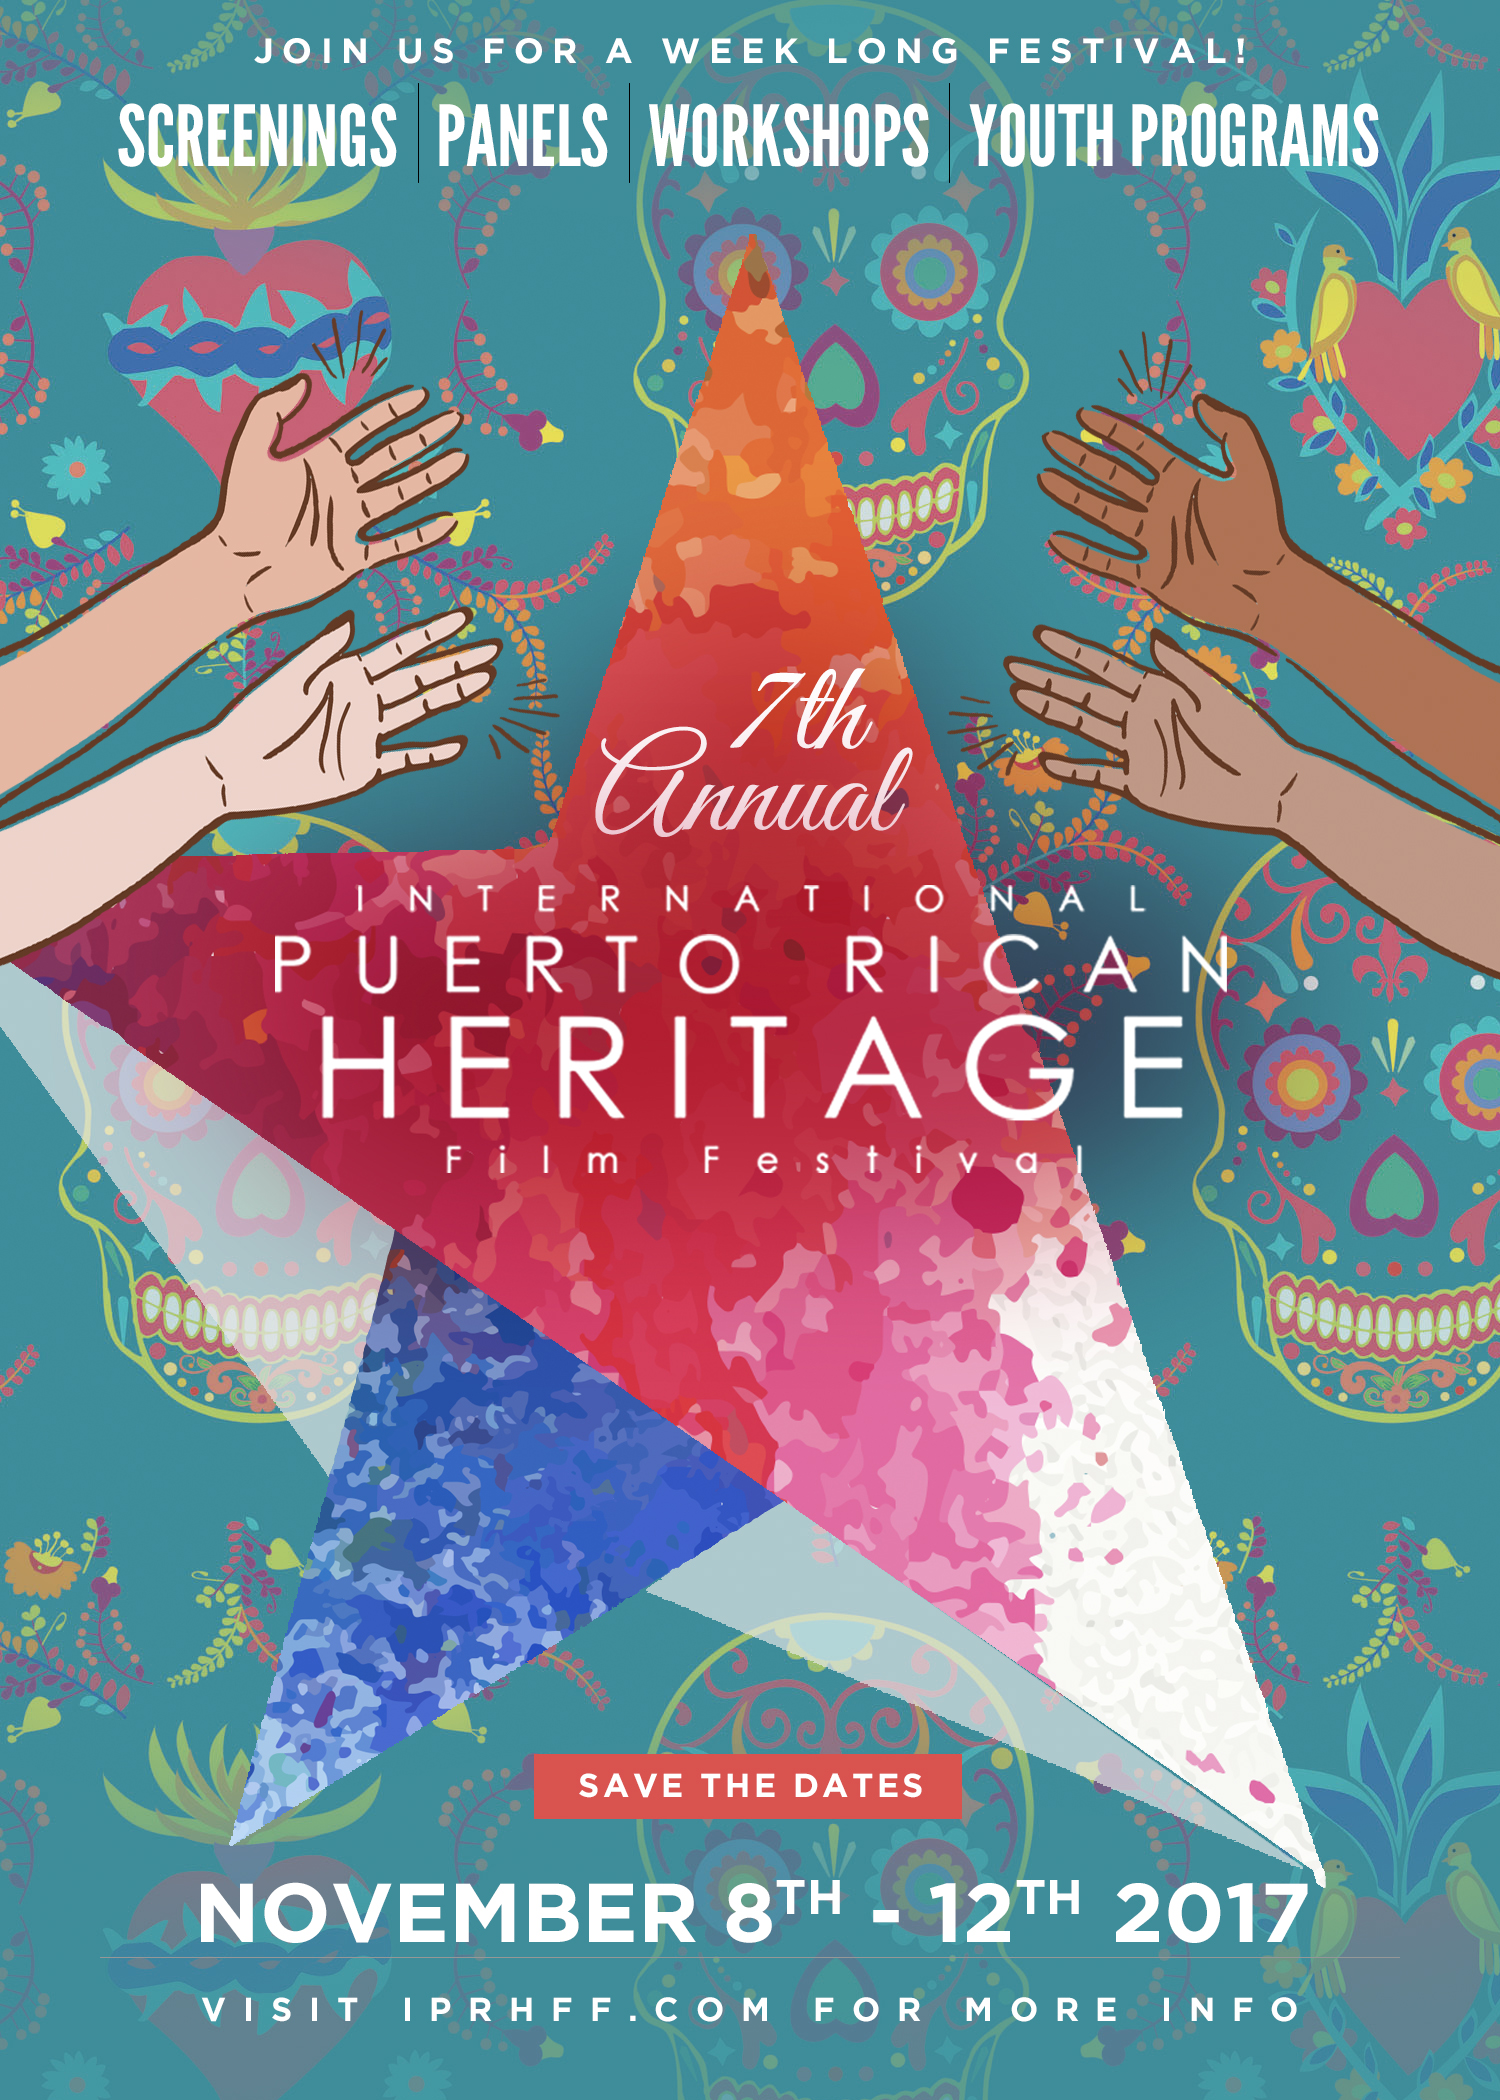 A Girl From Mexico - 7th Annual International Puerto Rican Heritage Film Festival